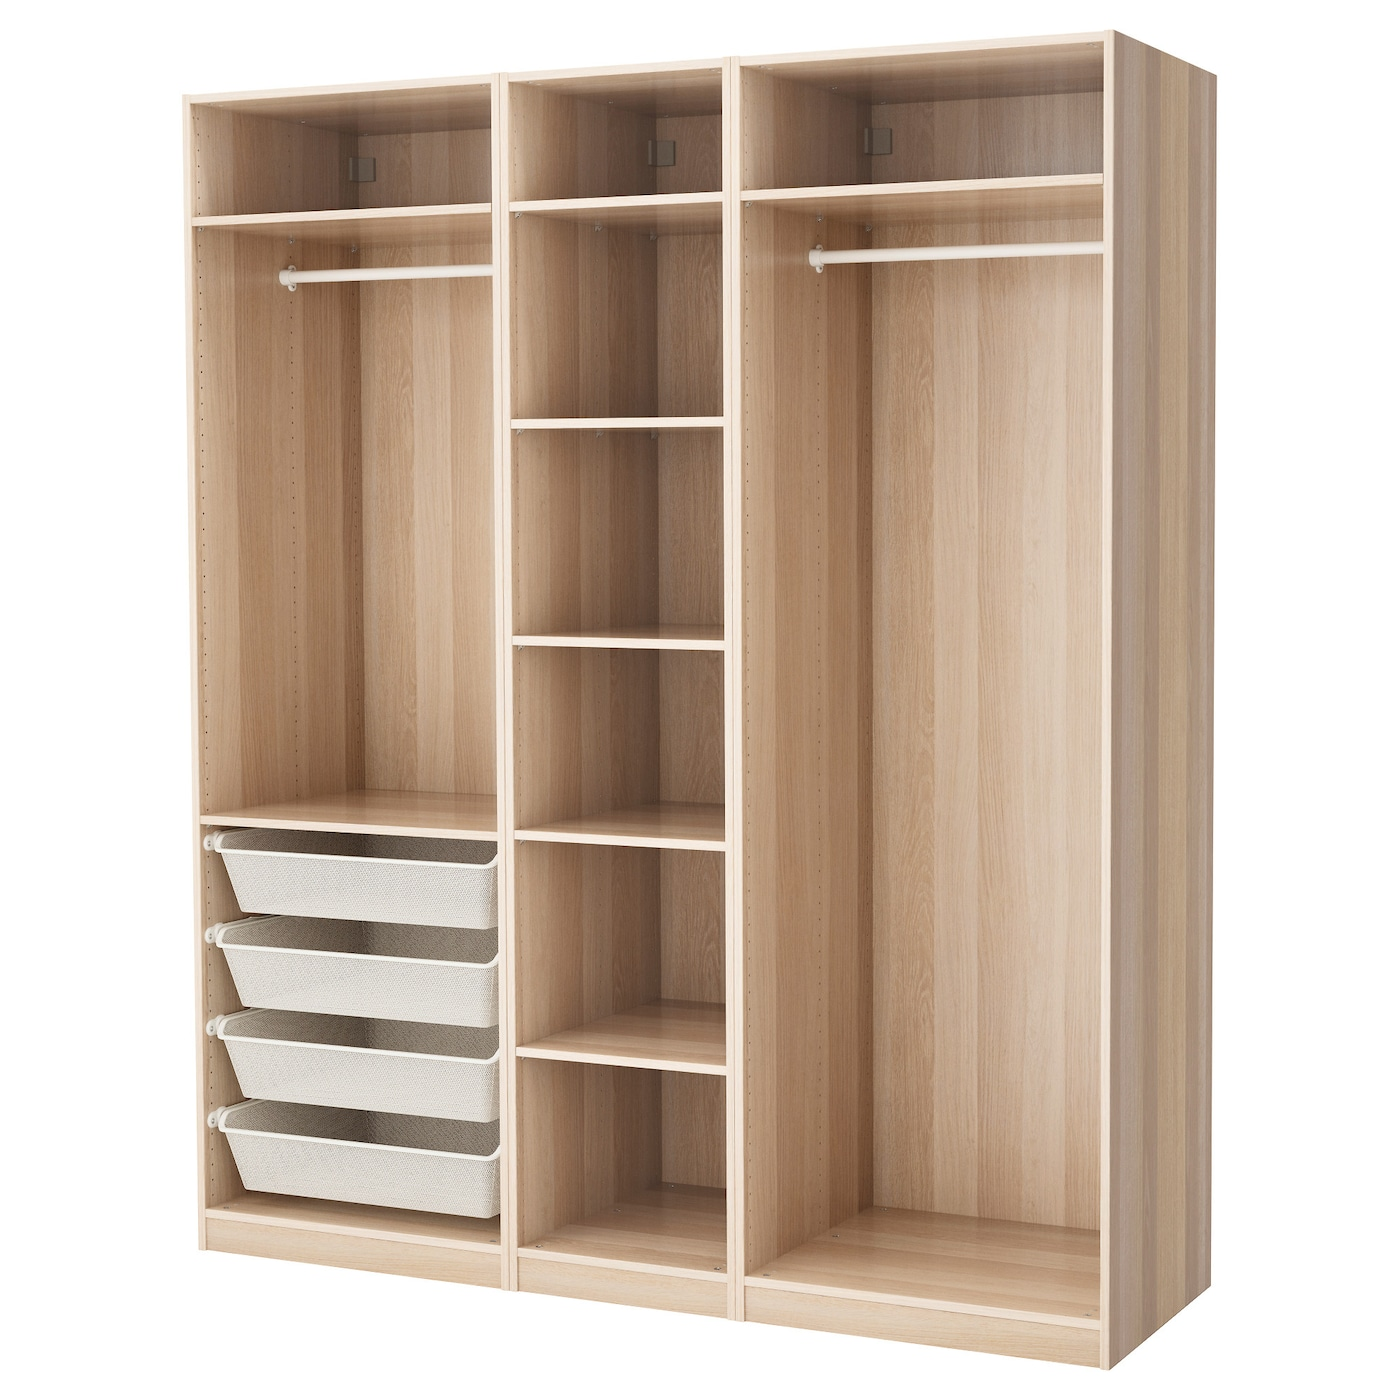 pax armoire penderie effet ch ne blanchi 200 x 58 x 236 cm ikea. Black Bedroom Furniture Sets. Home Design Ideas